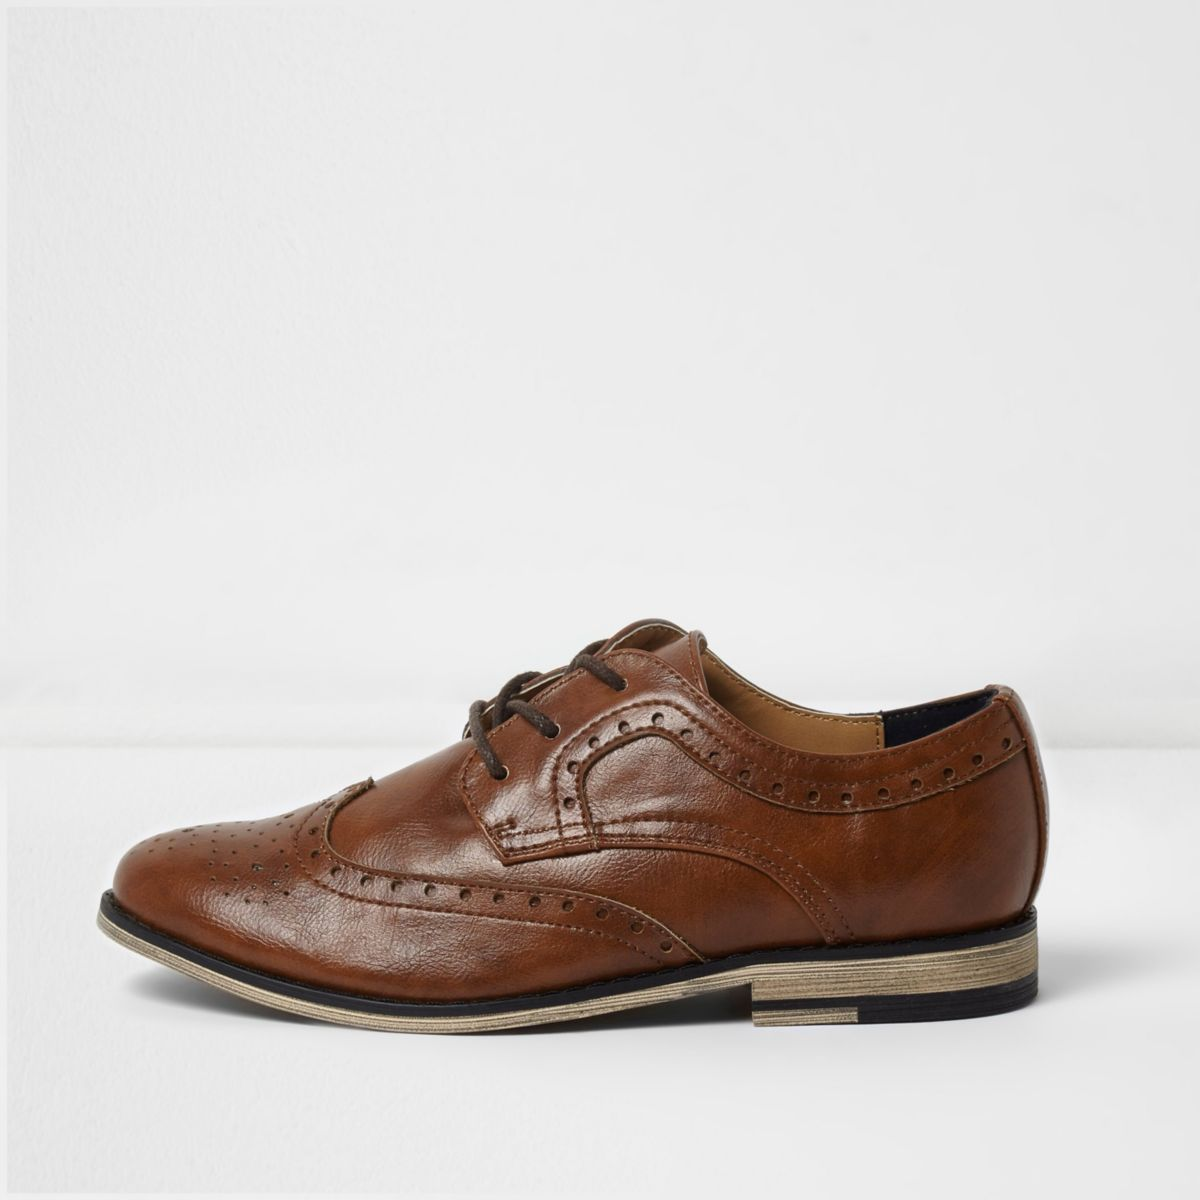 Boys tan brogues